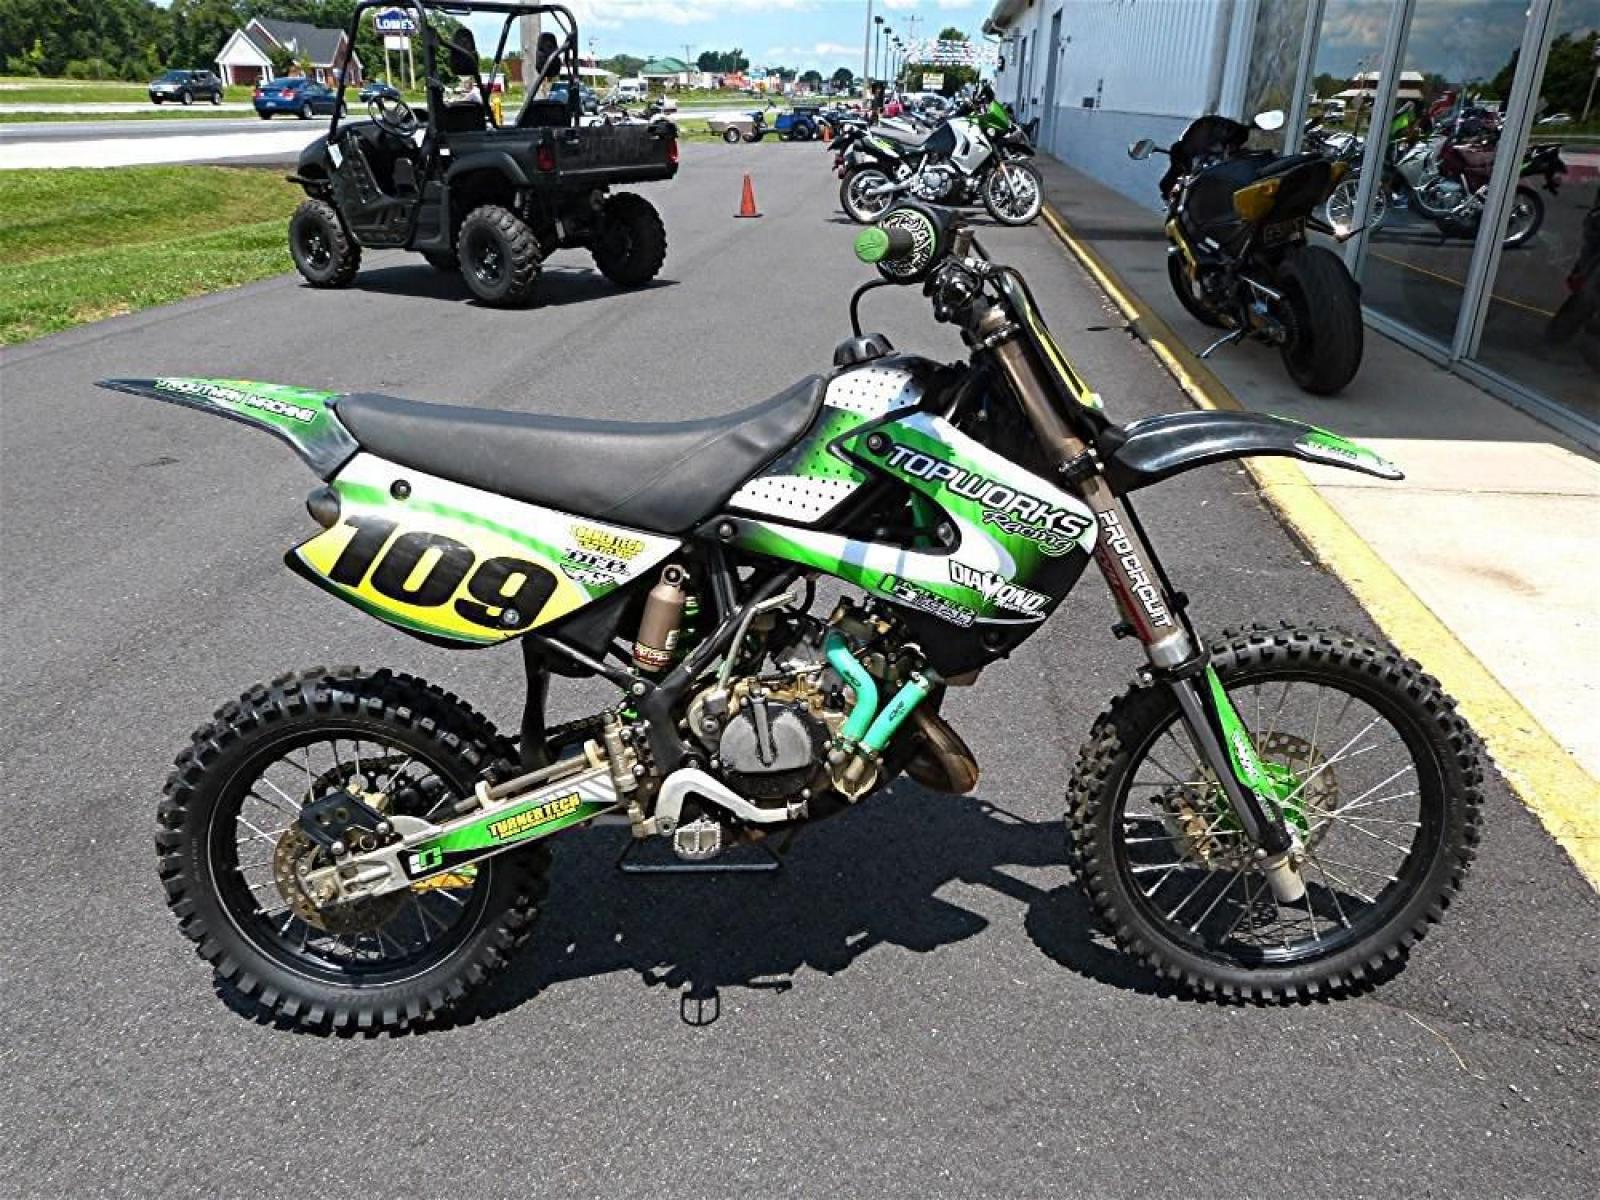 hight resolution of kawasaki kx85 2009 10 800 1024 1280 1600 origin